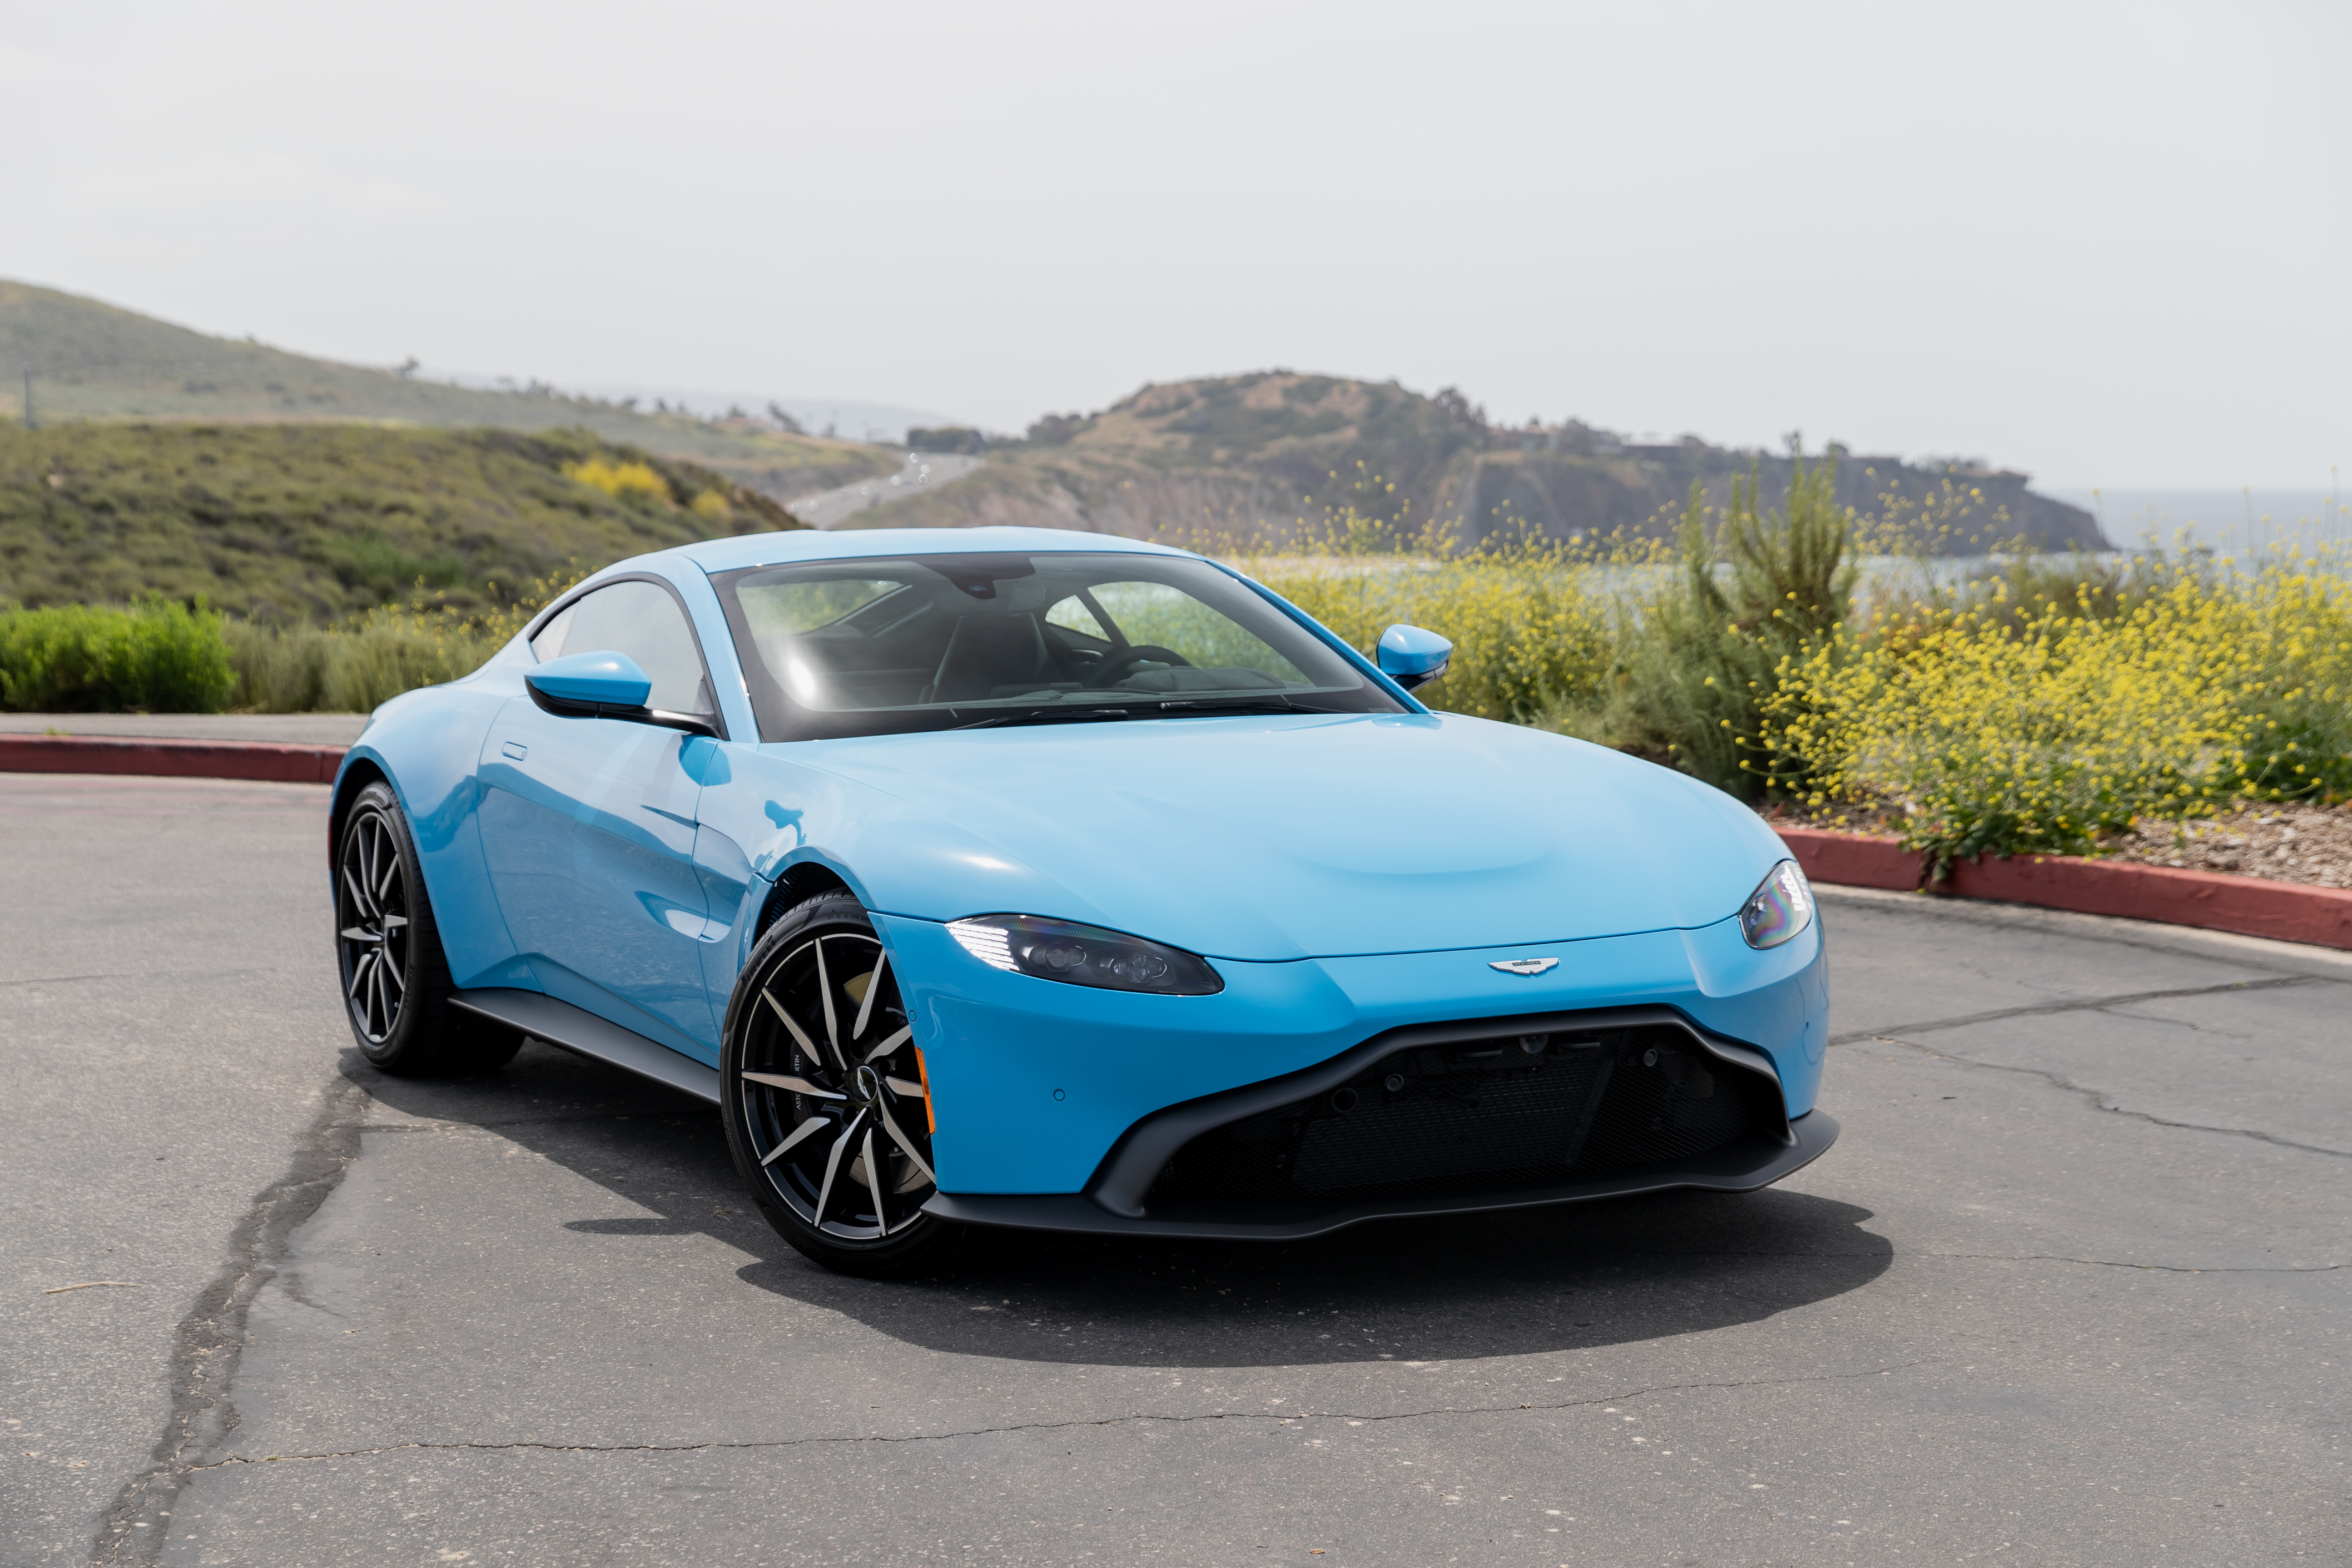 18 New Aston Martin Cars Suvs In Stock Aston Martin Newport Beach